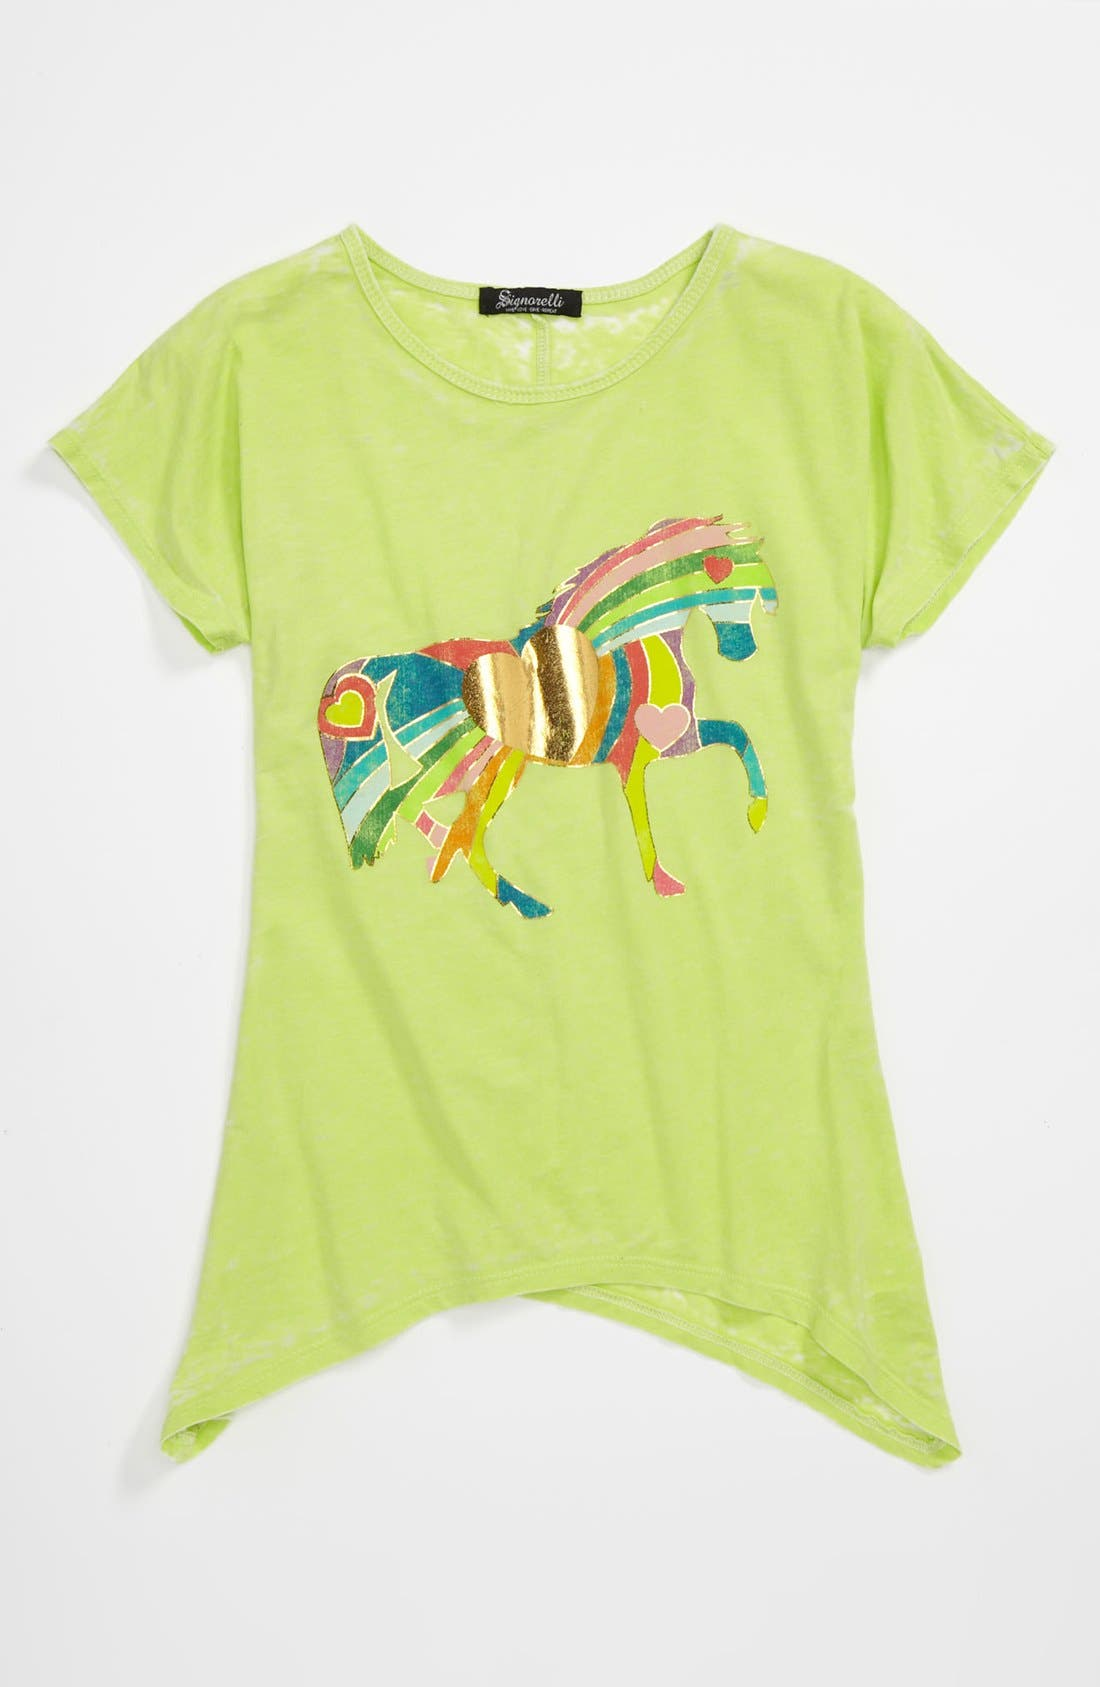 Alternate Image 1 Selected - Signorelli Graphic Tee (Big Girls)